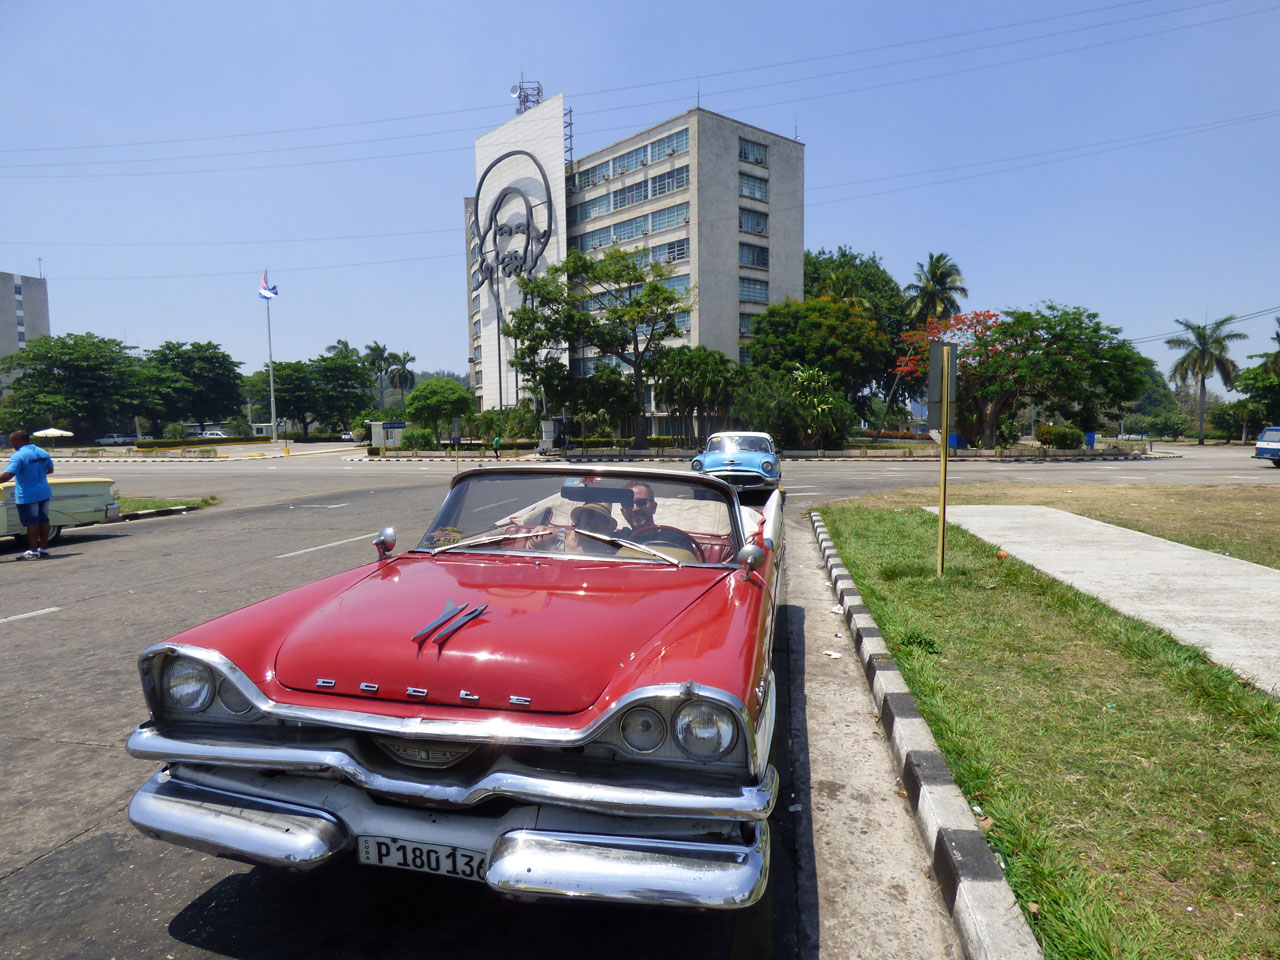 Dodge classic car in Revolution Square, Havana